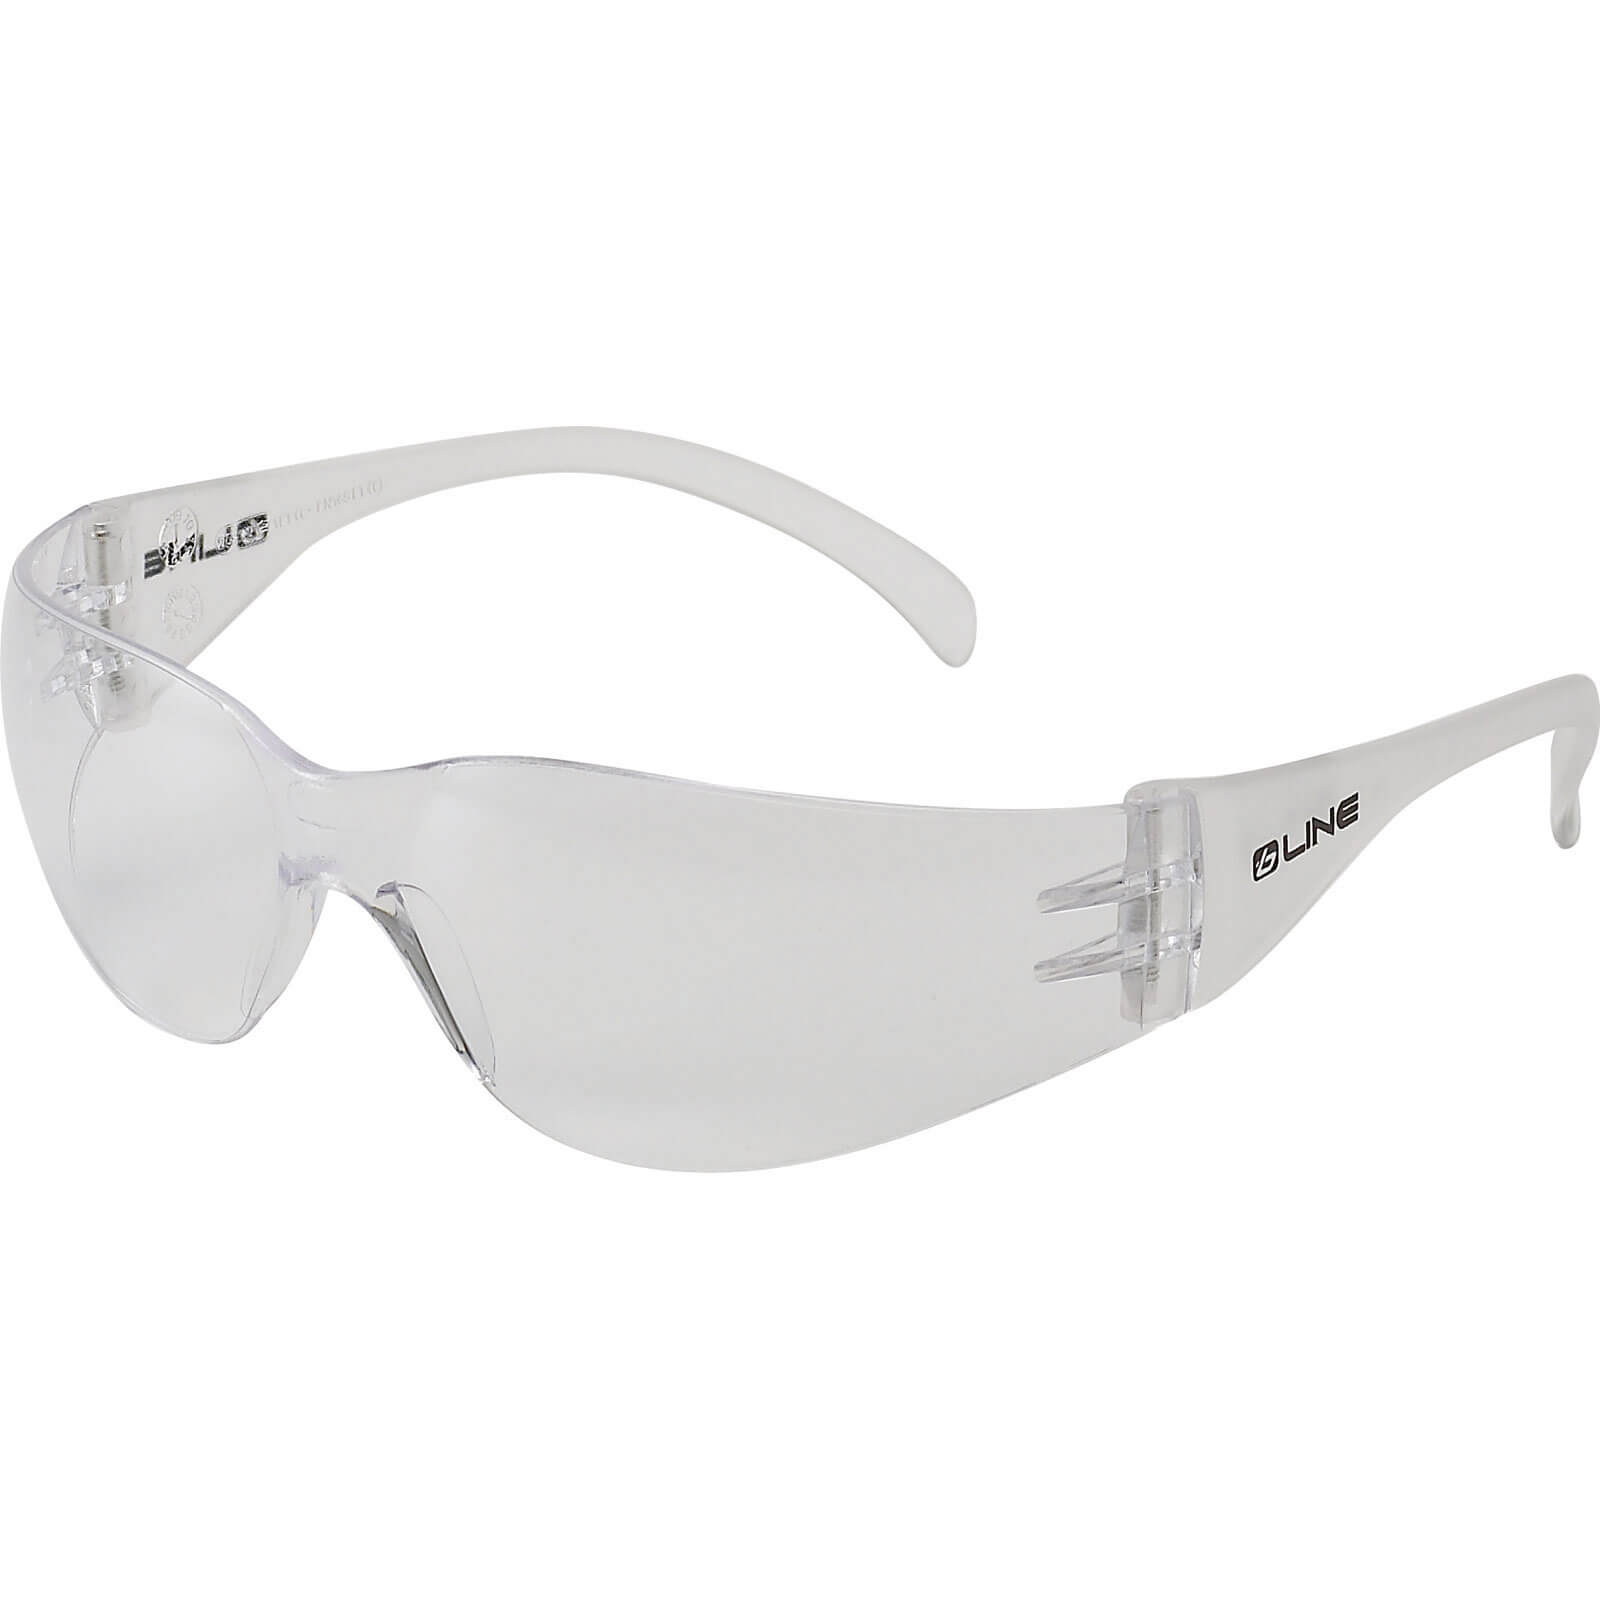 Bolle B-Line BL10CI Anti Scratch Clear Safety Glasses